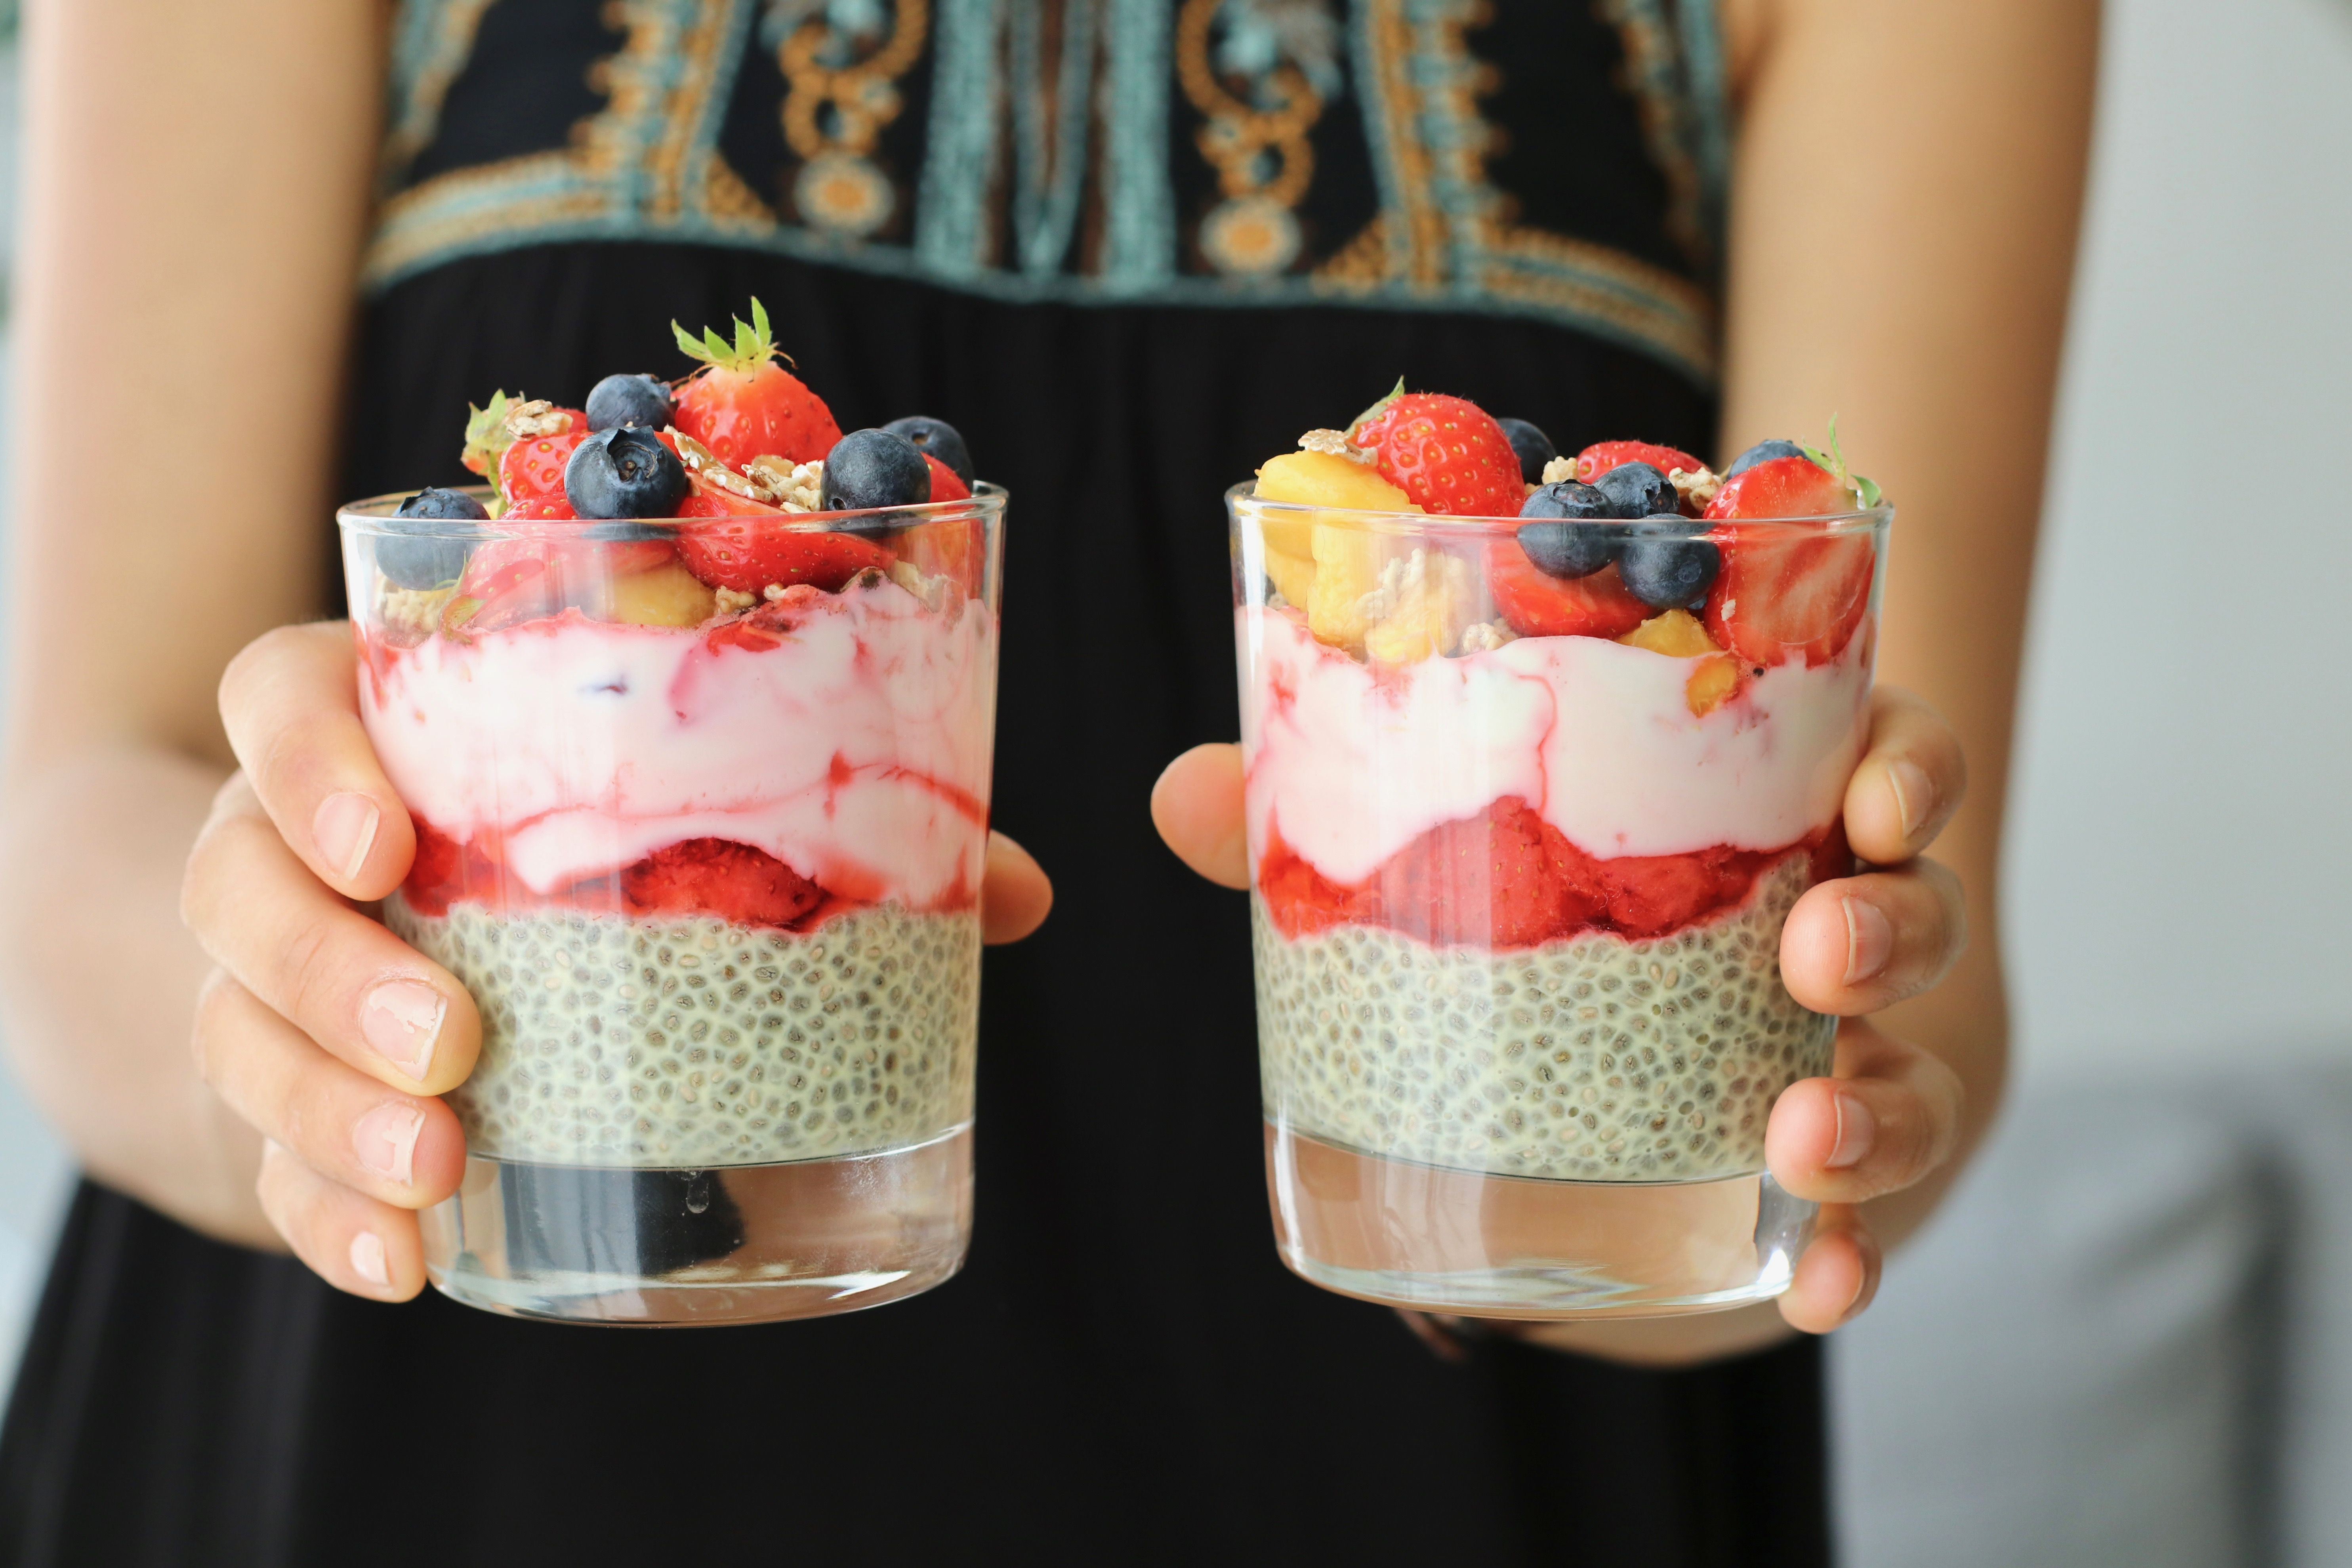 Here S A Super Delicious Recipe For Chia Pudding If You Haven T Already Tried Chia Gel Give It A Go It S An Incre Chia Seed Pudding Sweet Snacks Yummy Food